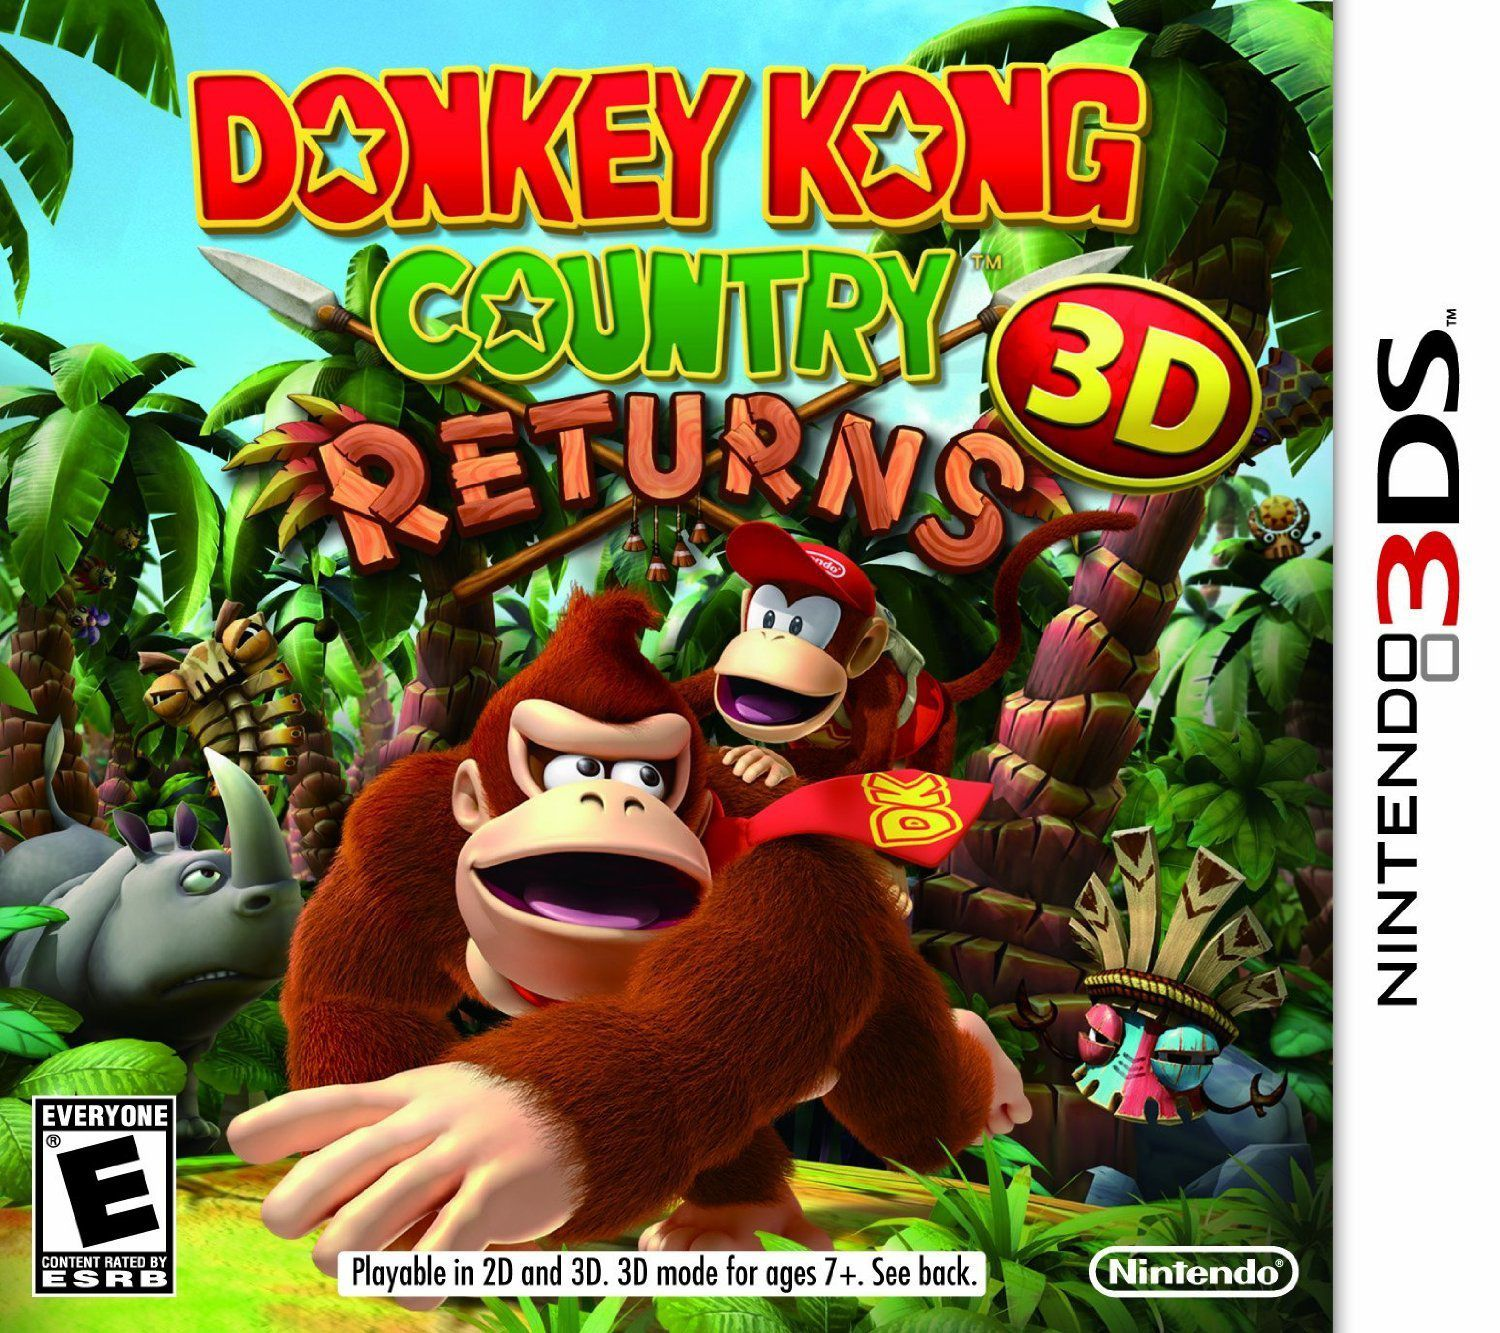 Publicity still for Donkey Kong Country Returns 3D